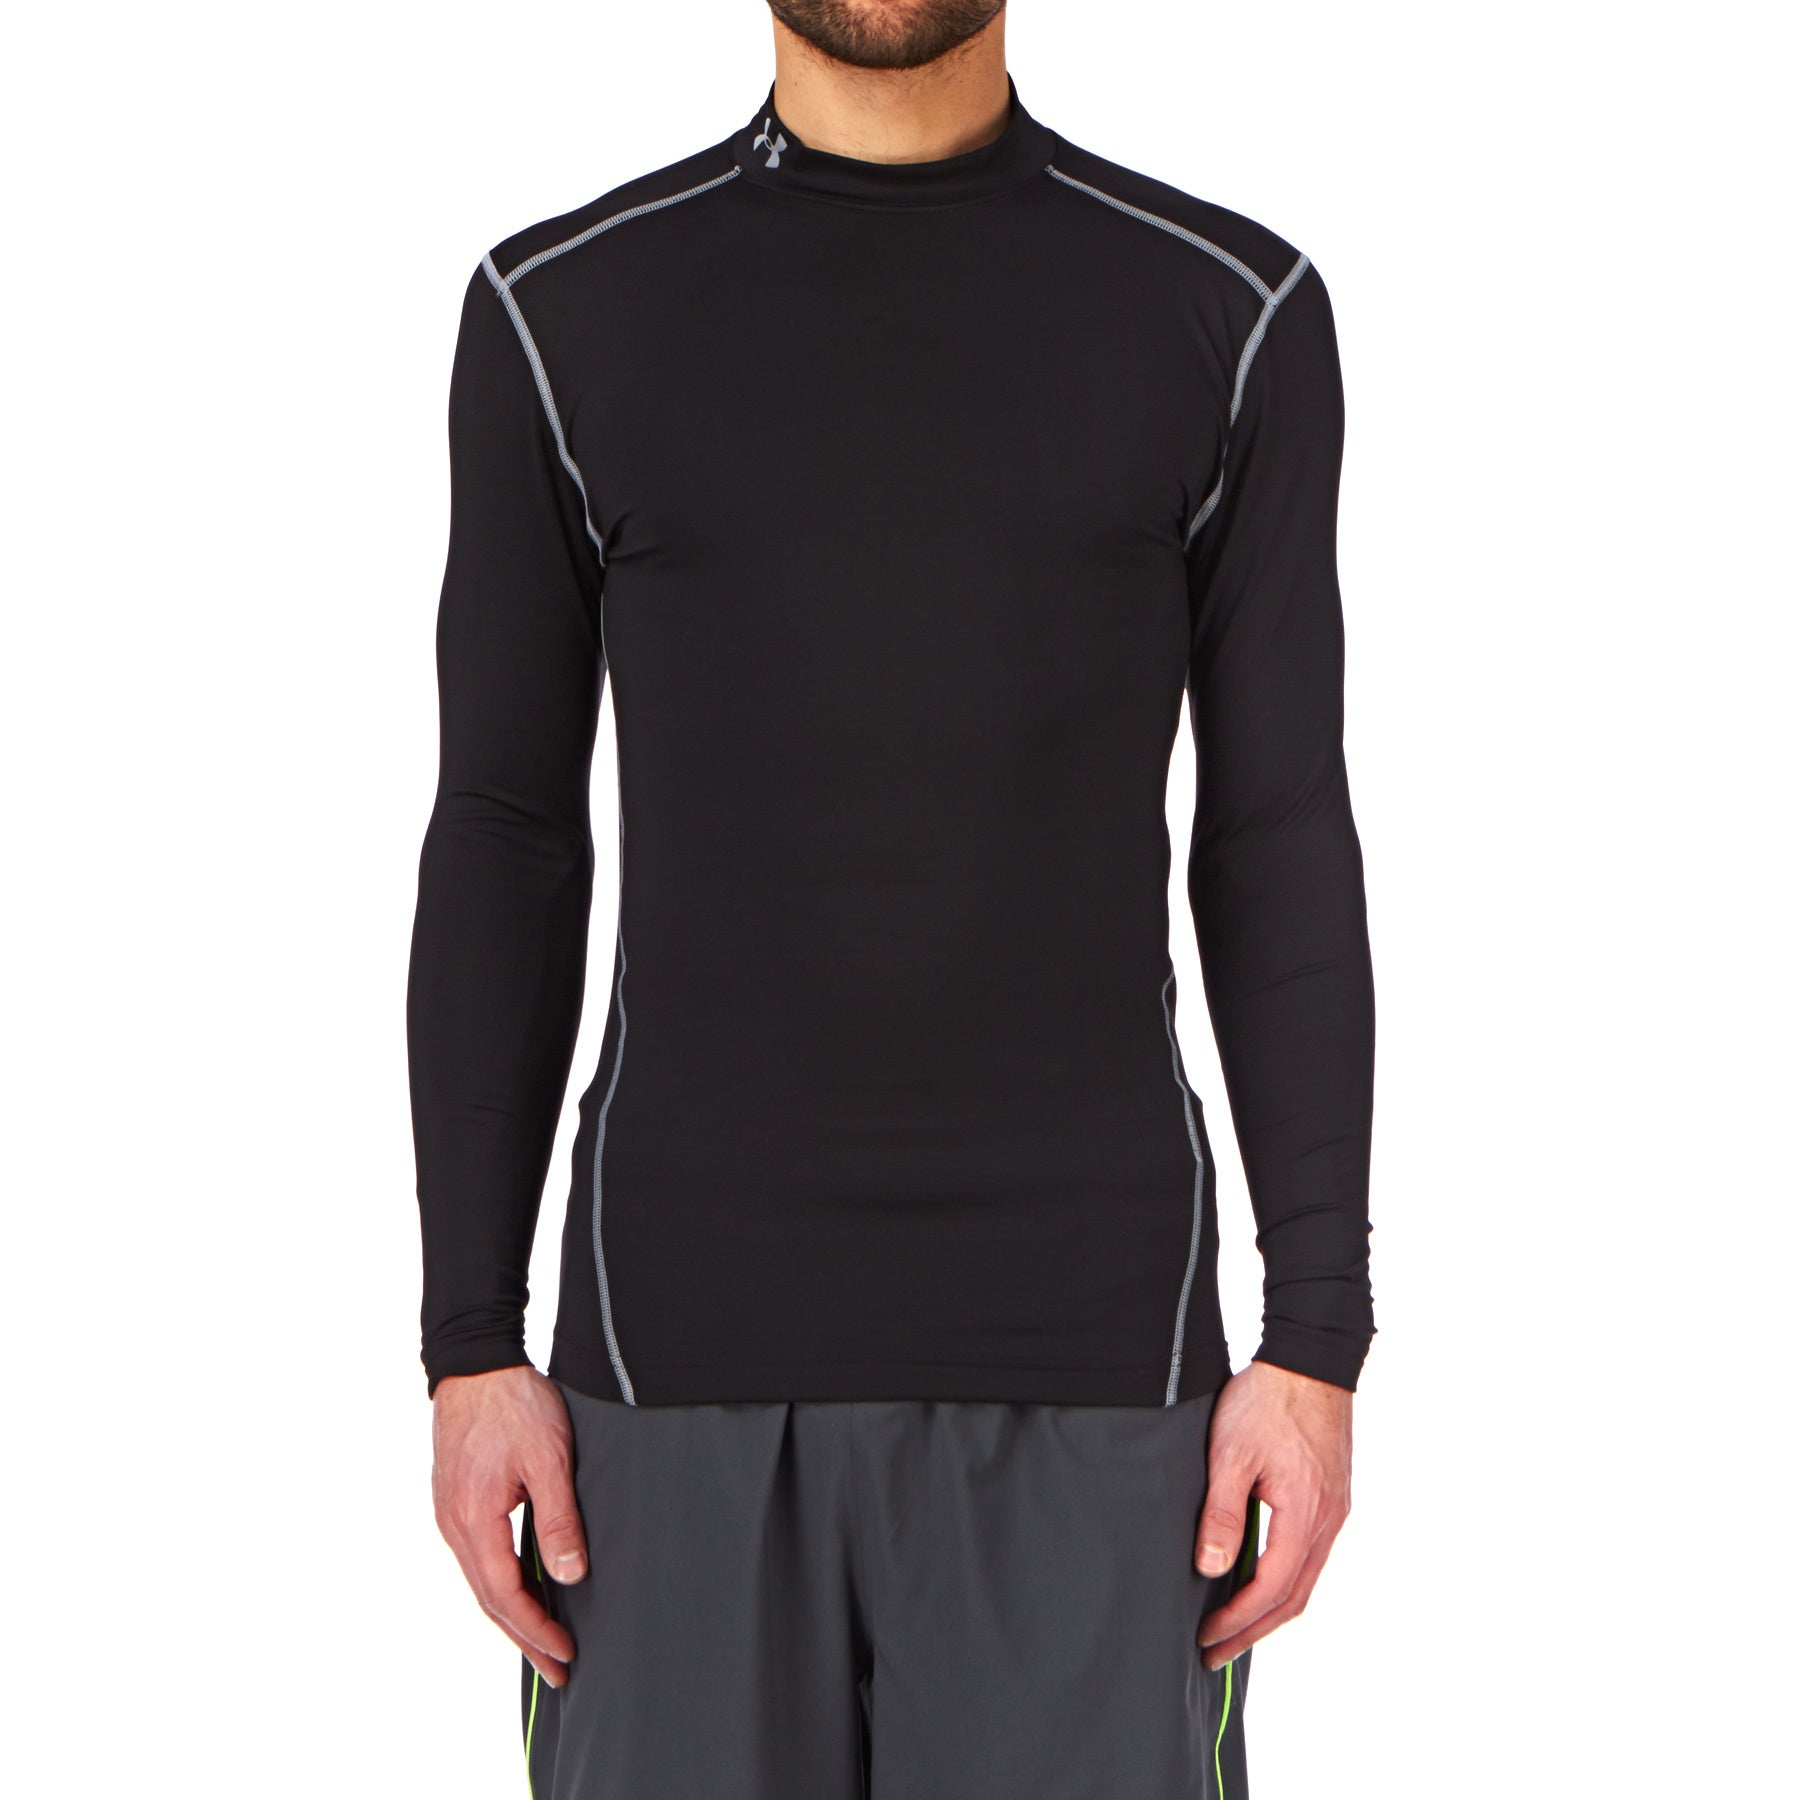 Under Armour Cold Gear Mock LS Base Layer Top - Black/ Steel